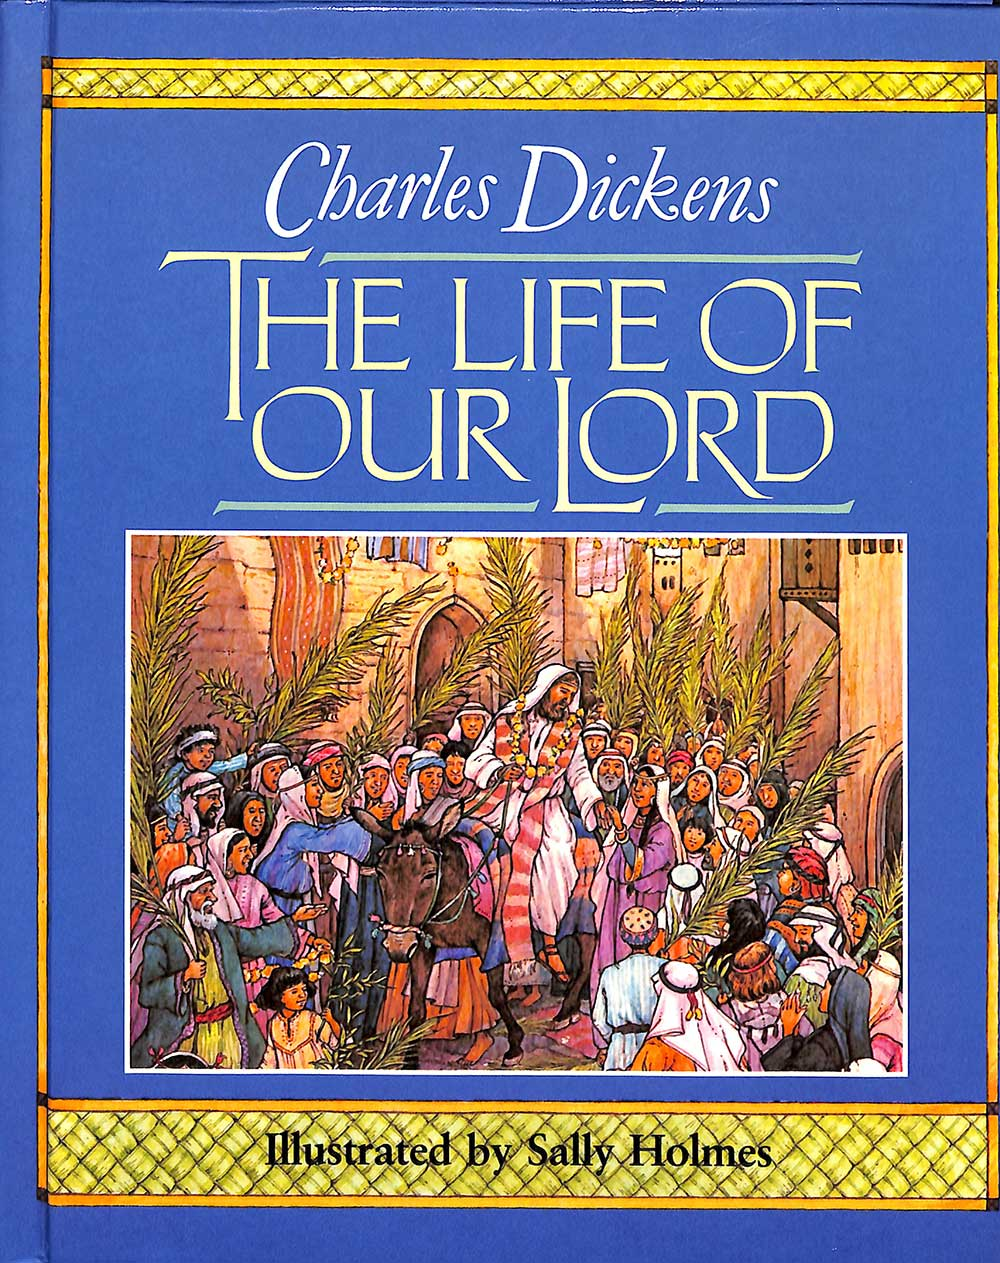 Charles Dickens. <em>The life of our Lord.</em> Illustrated by Sally Holmes. Morristown, N.J.: Silver Burdett Press, 1987.